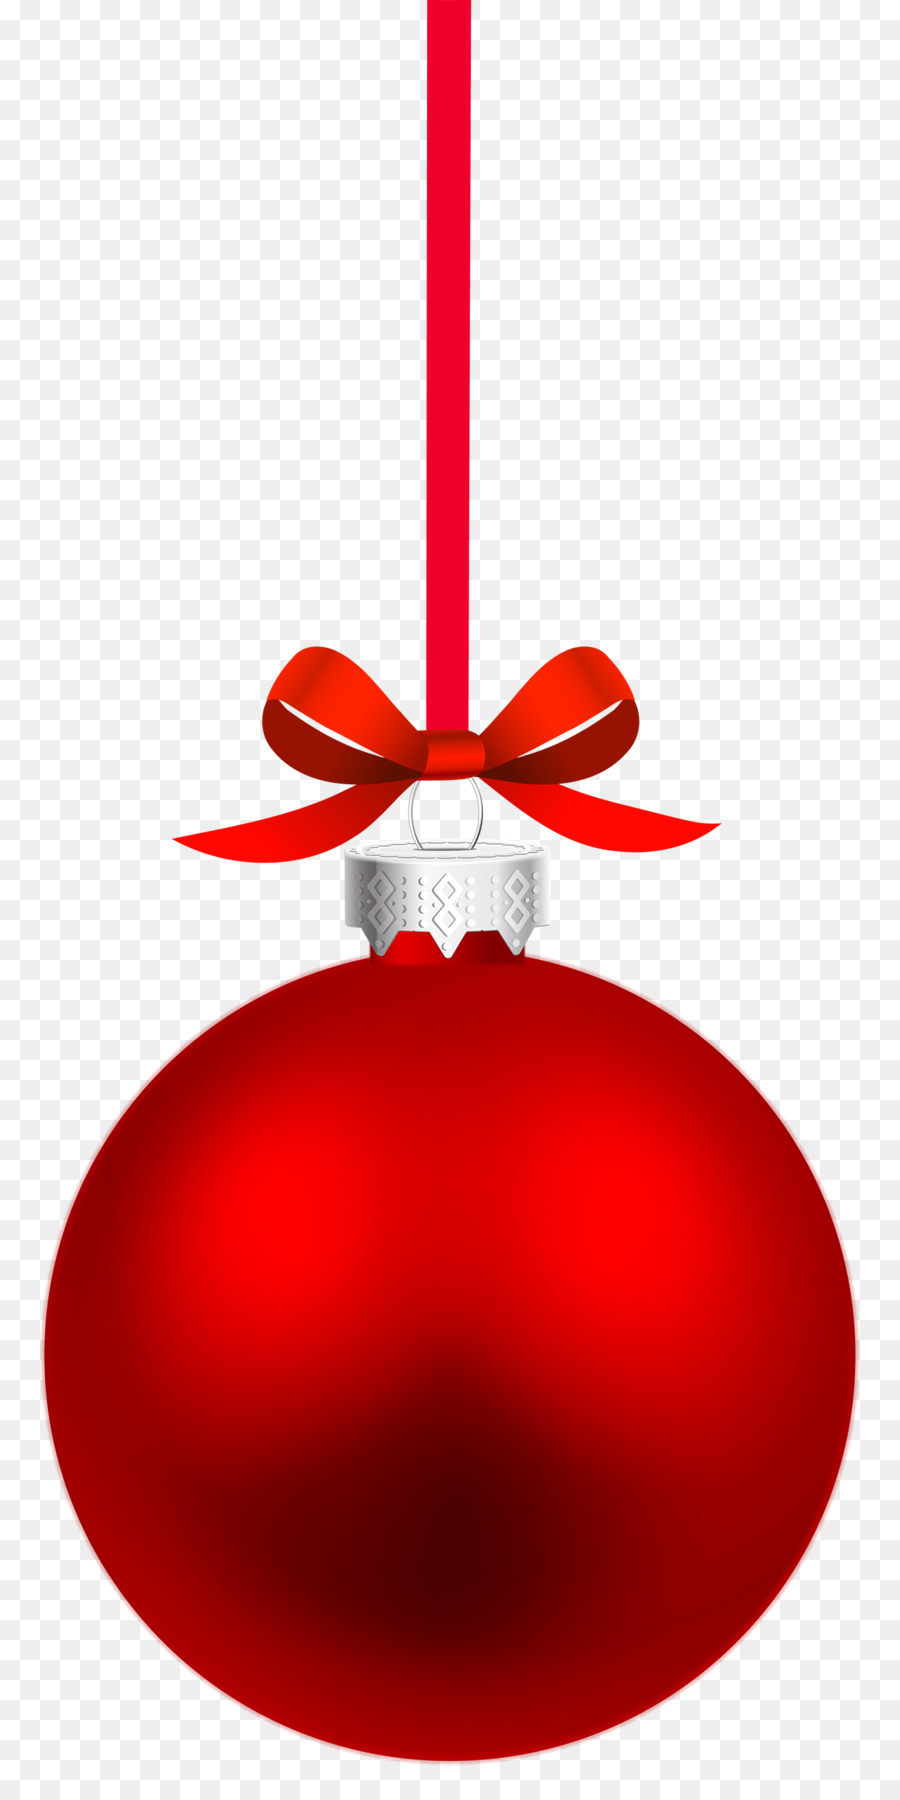 Red Christmas Tree png download.